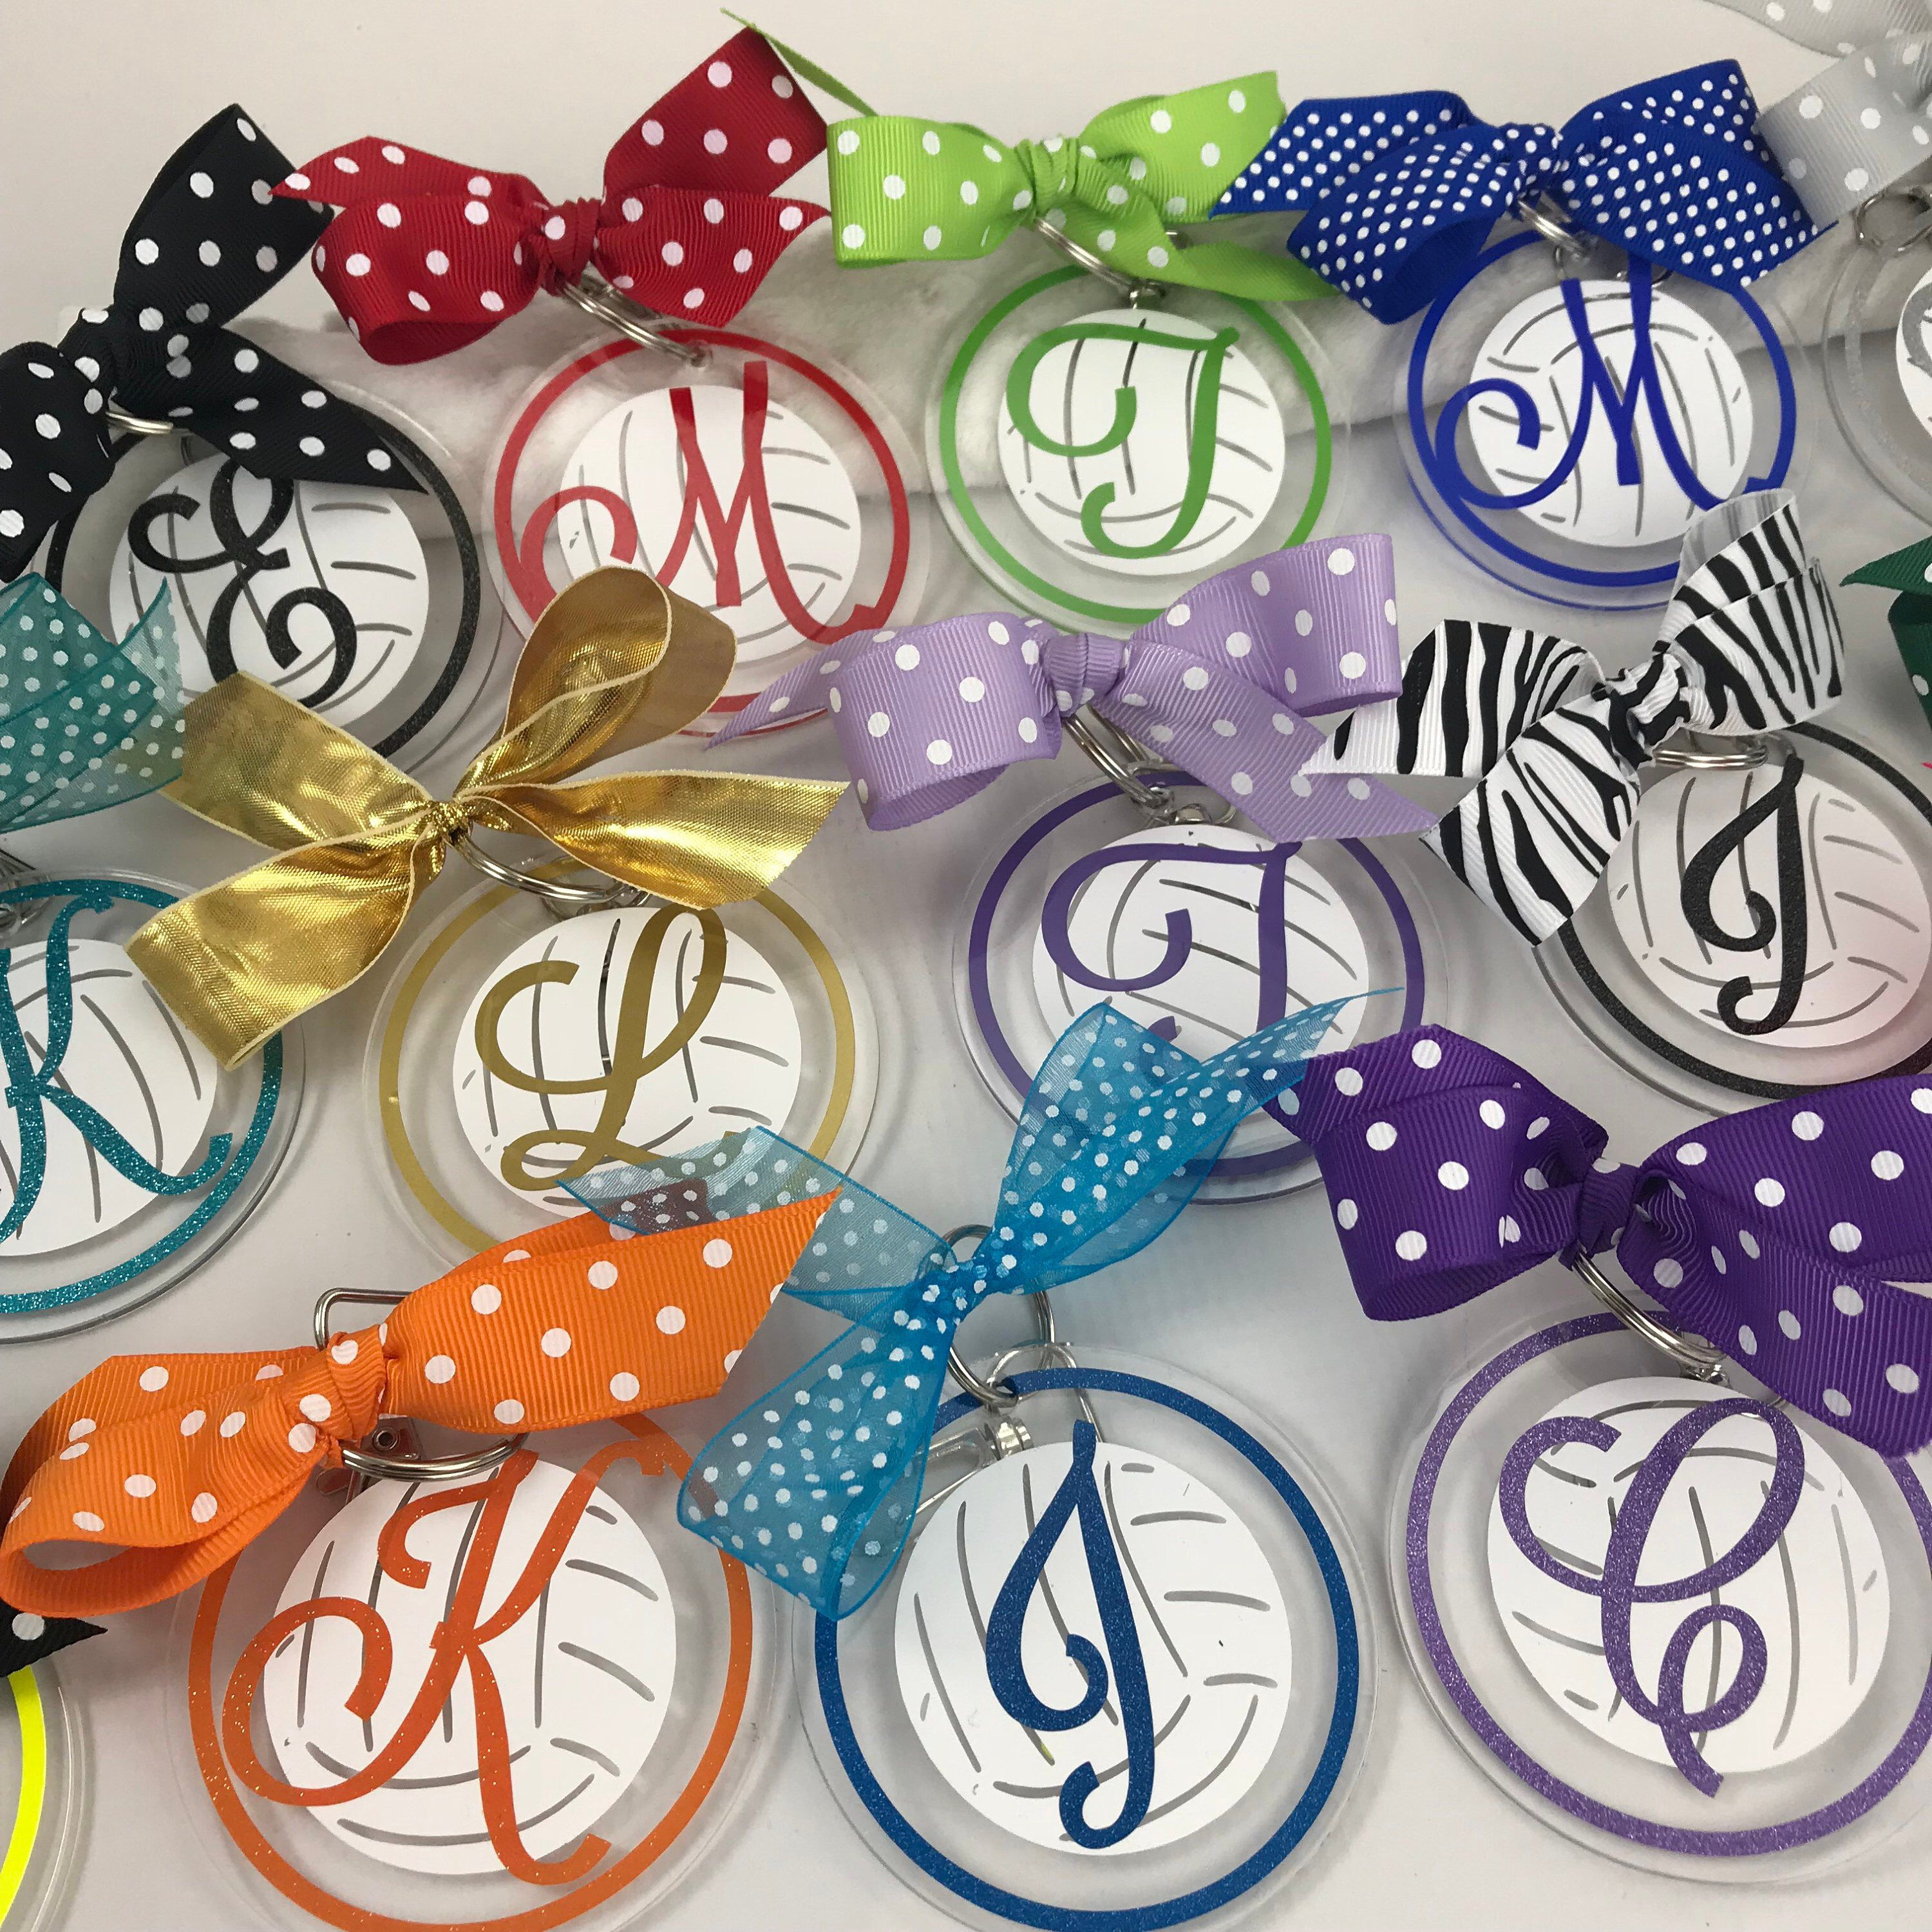 Volleyball Bag Tag With White Ball And Fancy Script Initial Etsy Volleyball Bag Tags Volleyball Bag Volleyball Gifts